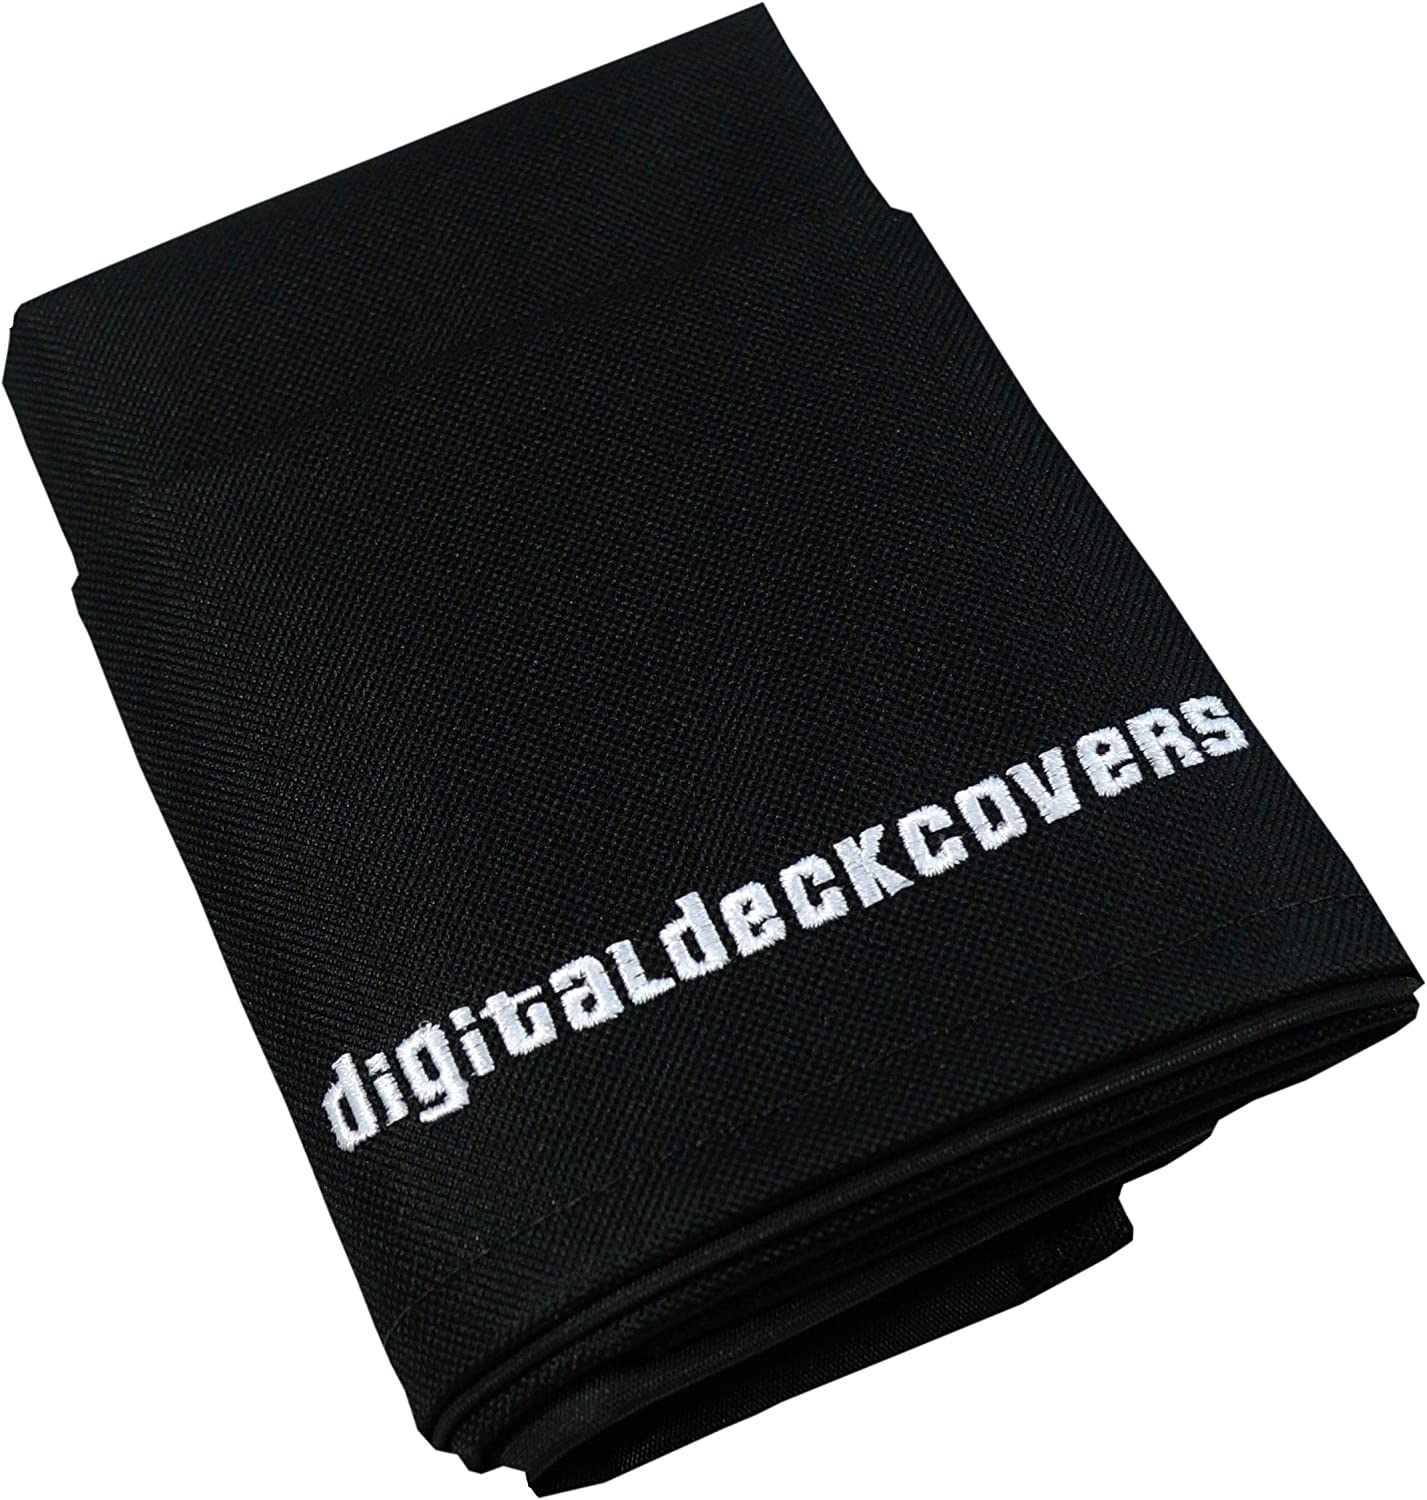 DigitalDeckCovers Printer Dust Cover for Canon Pixma MX712 / MX860 / MX870 / MX882 / MX885 / MX892 Printers [Antistatic, Water Resistant, Heavy Duty Fabric, Black]